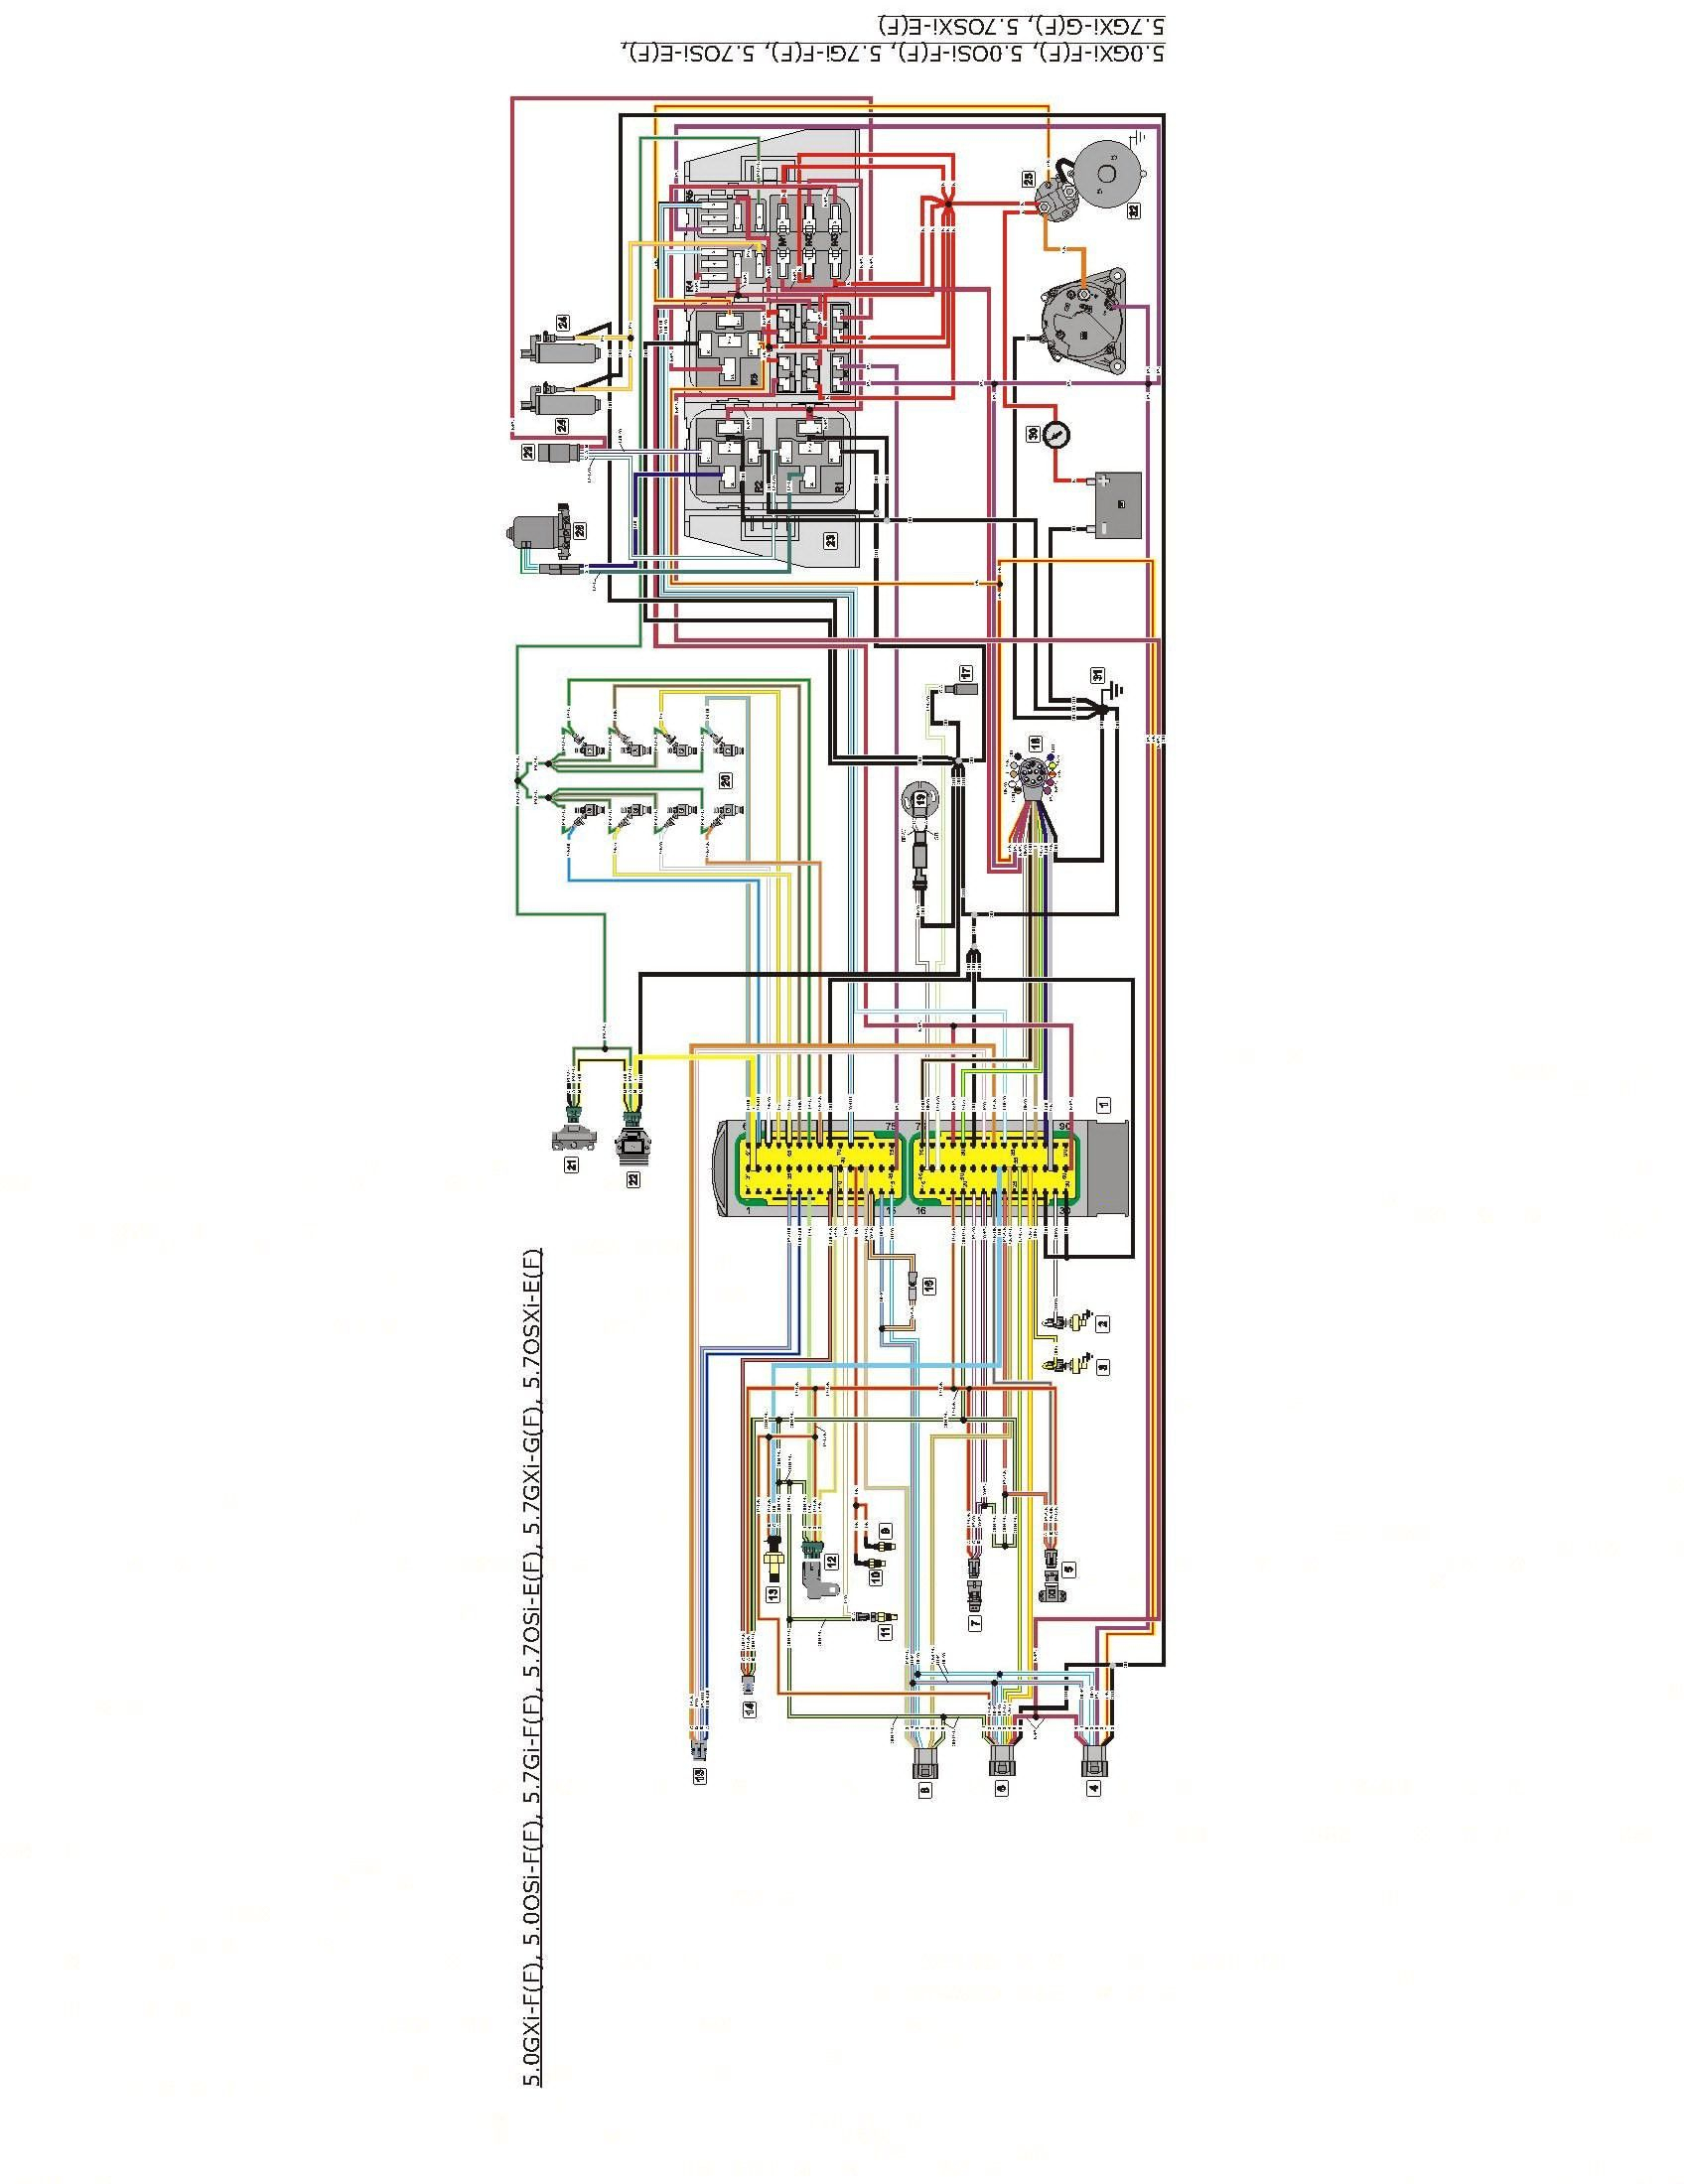 Tilt And Trim Wiring Diagram - Electricity Site